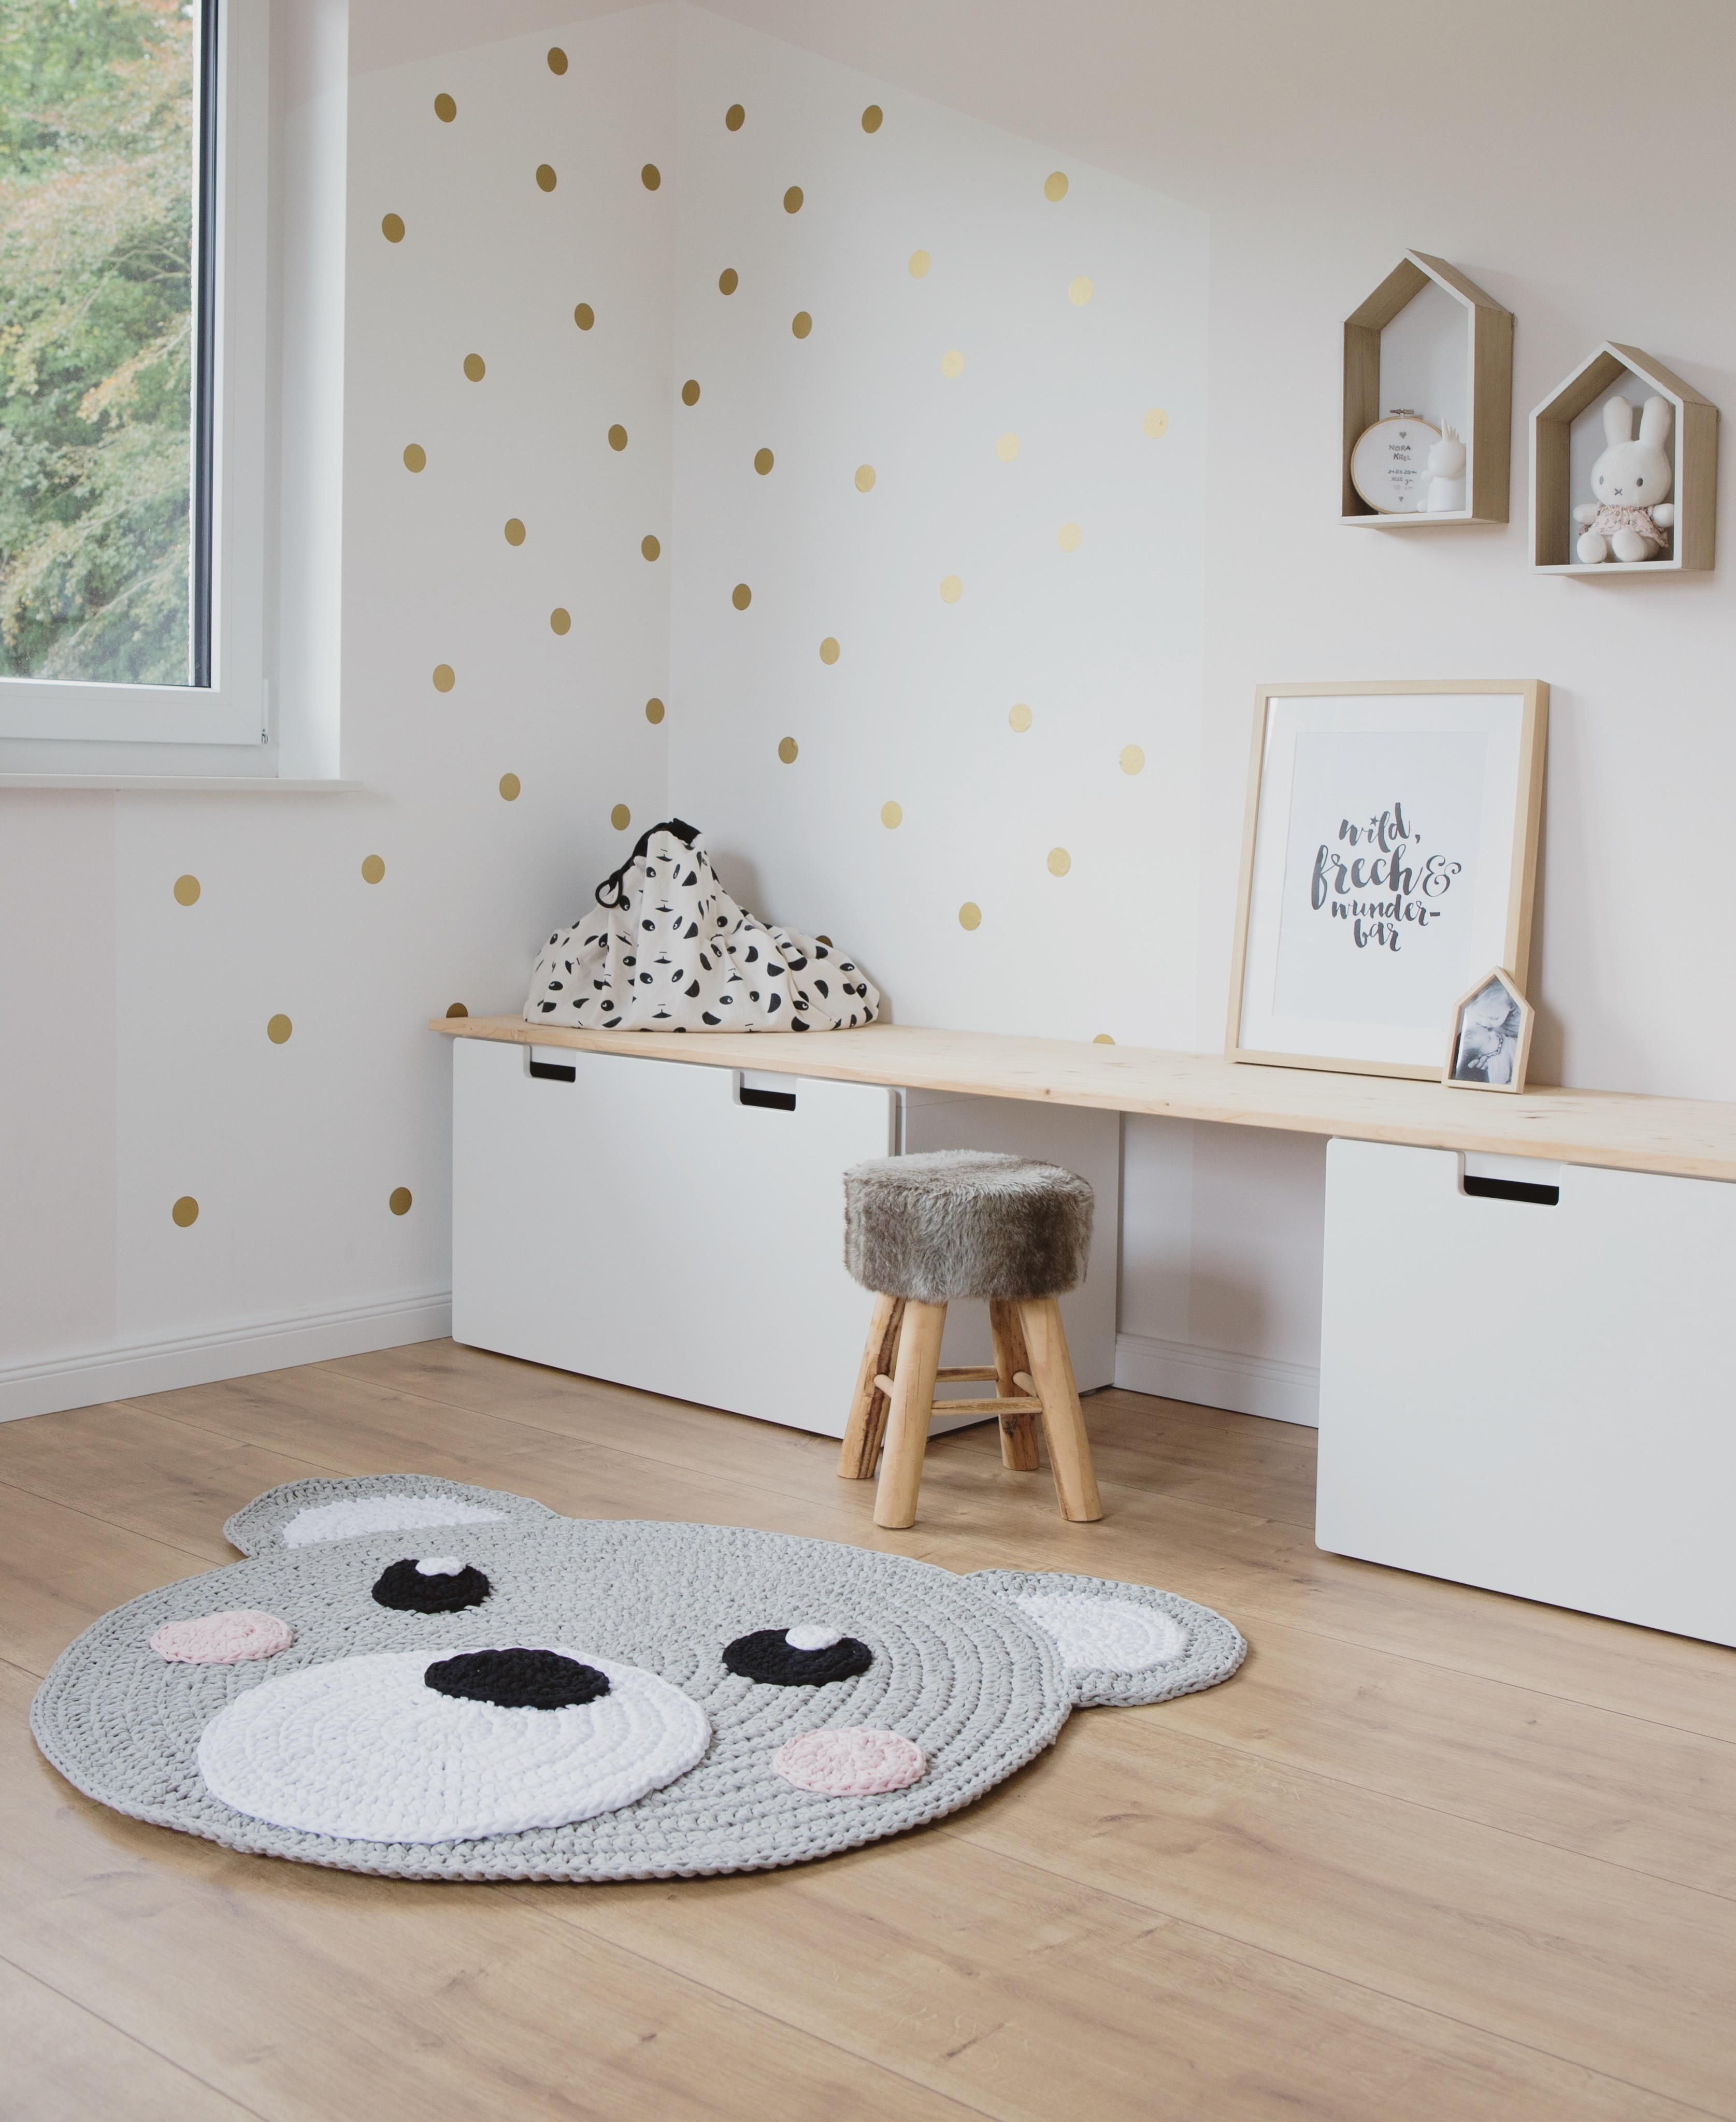 kinderzimmer in 2019 kinderzimmer kinder zimmer kinderzimmer und kinderzimmer ideen. Black Bedroom Furniture Sets. Home Design Ideas